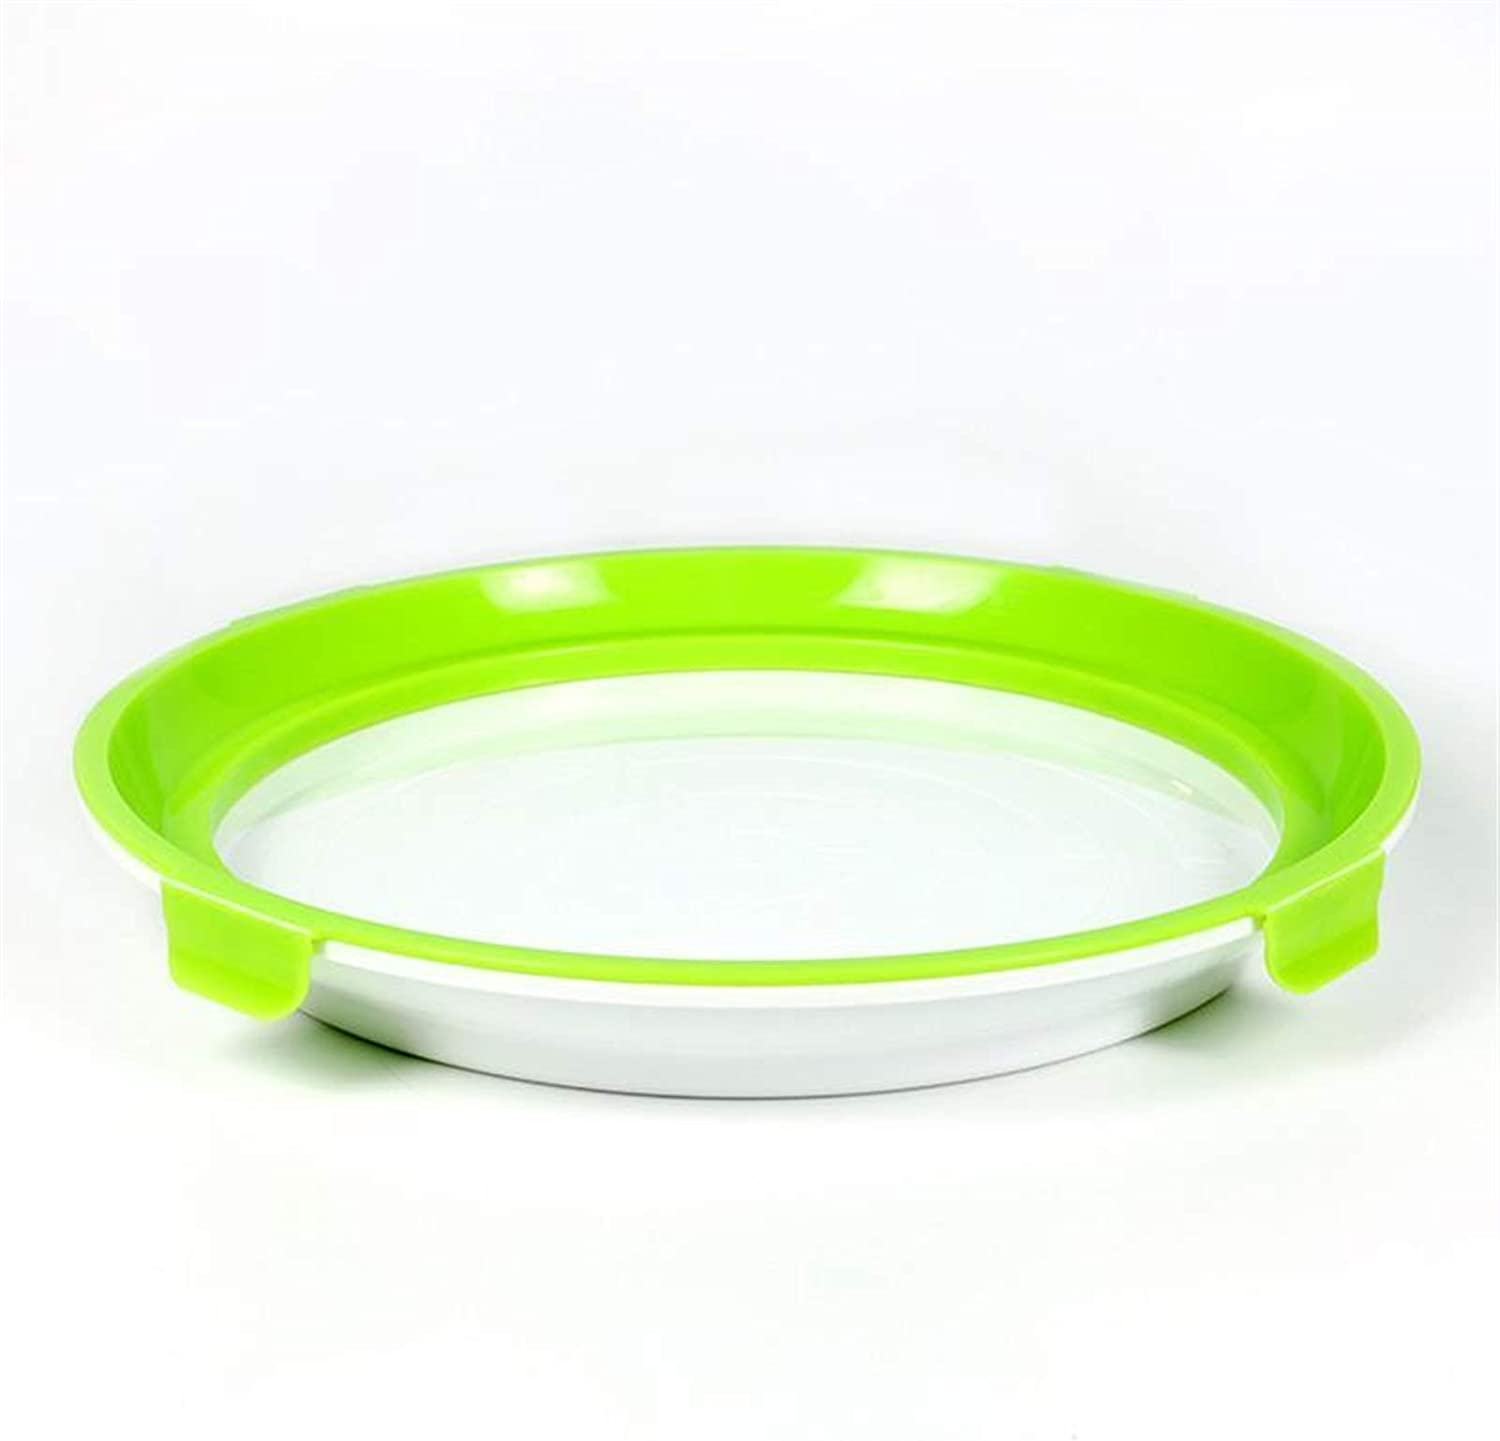 Bottle Round Tray Food Plastic Preservation Tray Kitchen Items Food Storage Container Set Food Fresh Storage Microwave Storage (Color : Light Green, Number of Tiers : 2PCS)